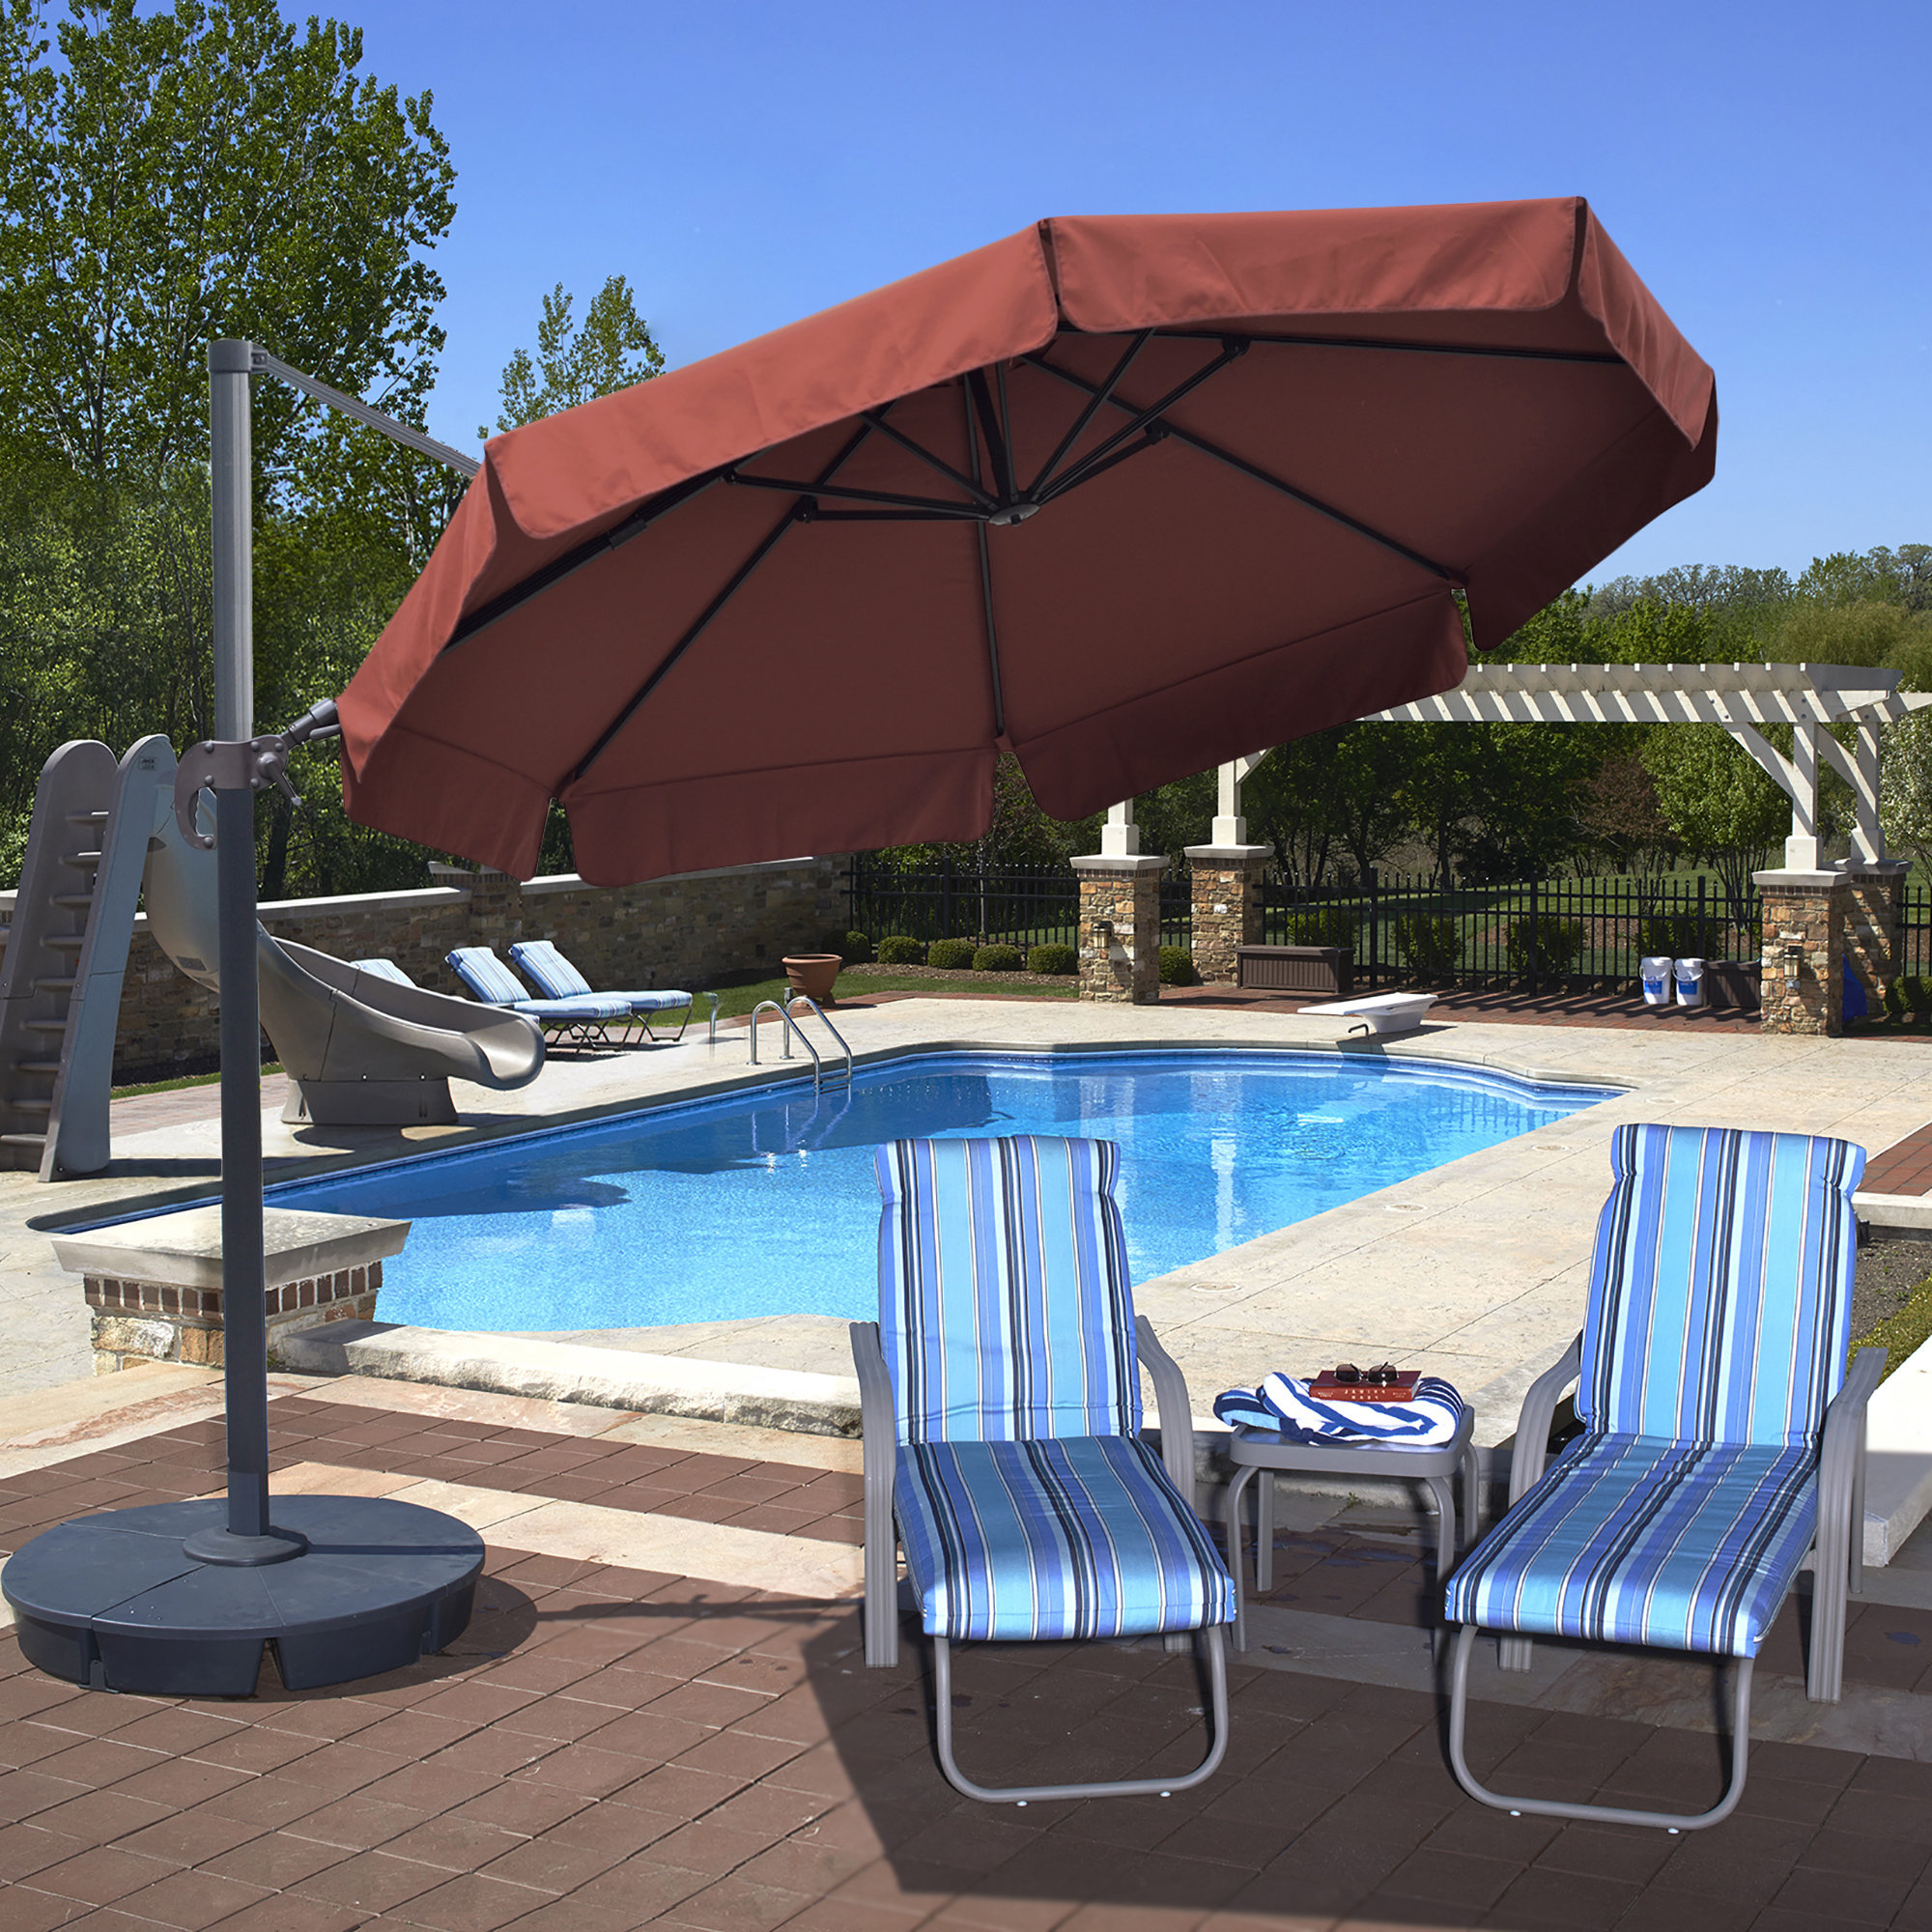 Voss Cantilever Sunbrella Umbrellas In Newest Emely 11' Cantilever Sunbrella Umbrella (Gallery 19 of 20)